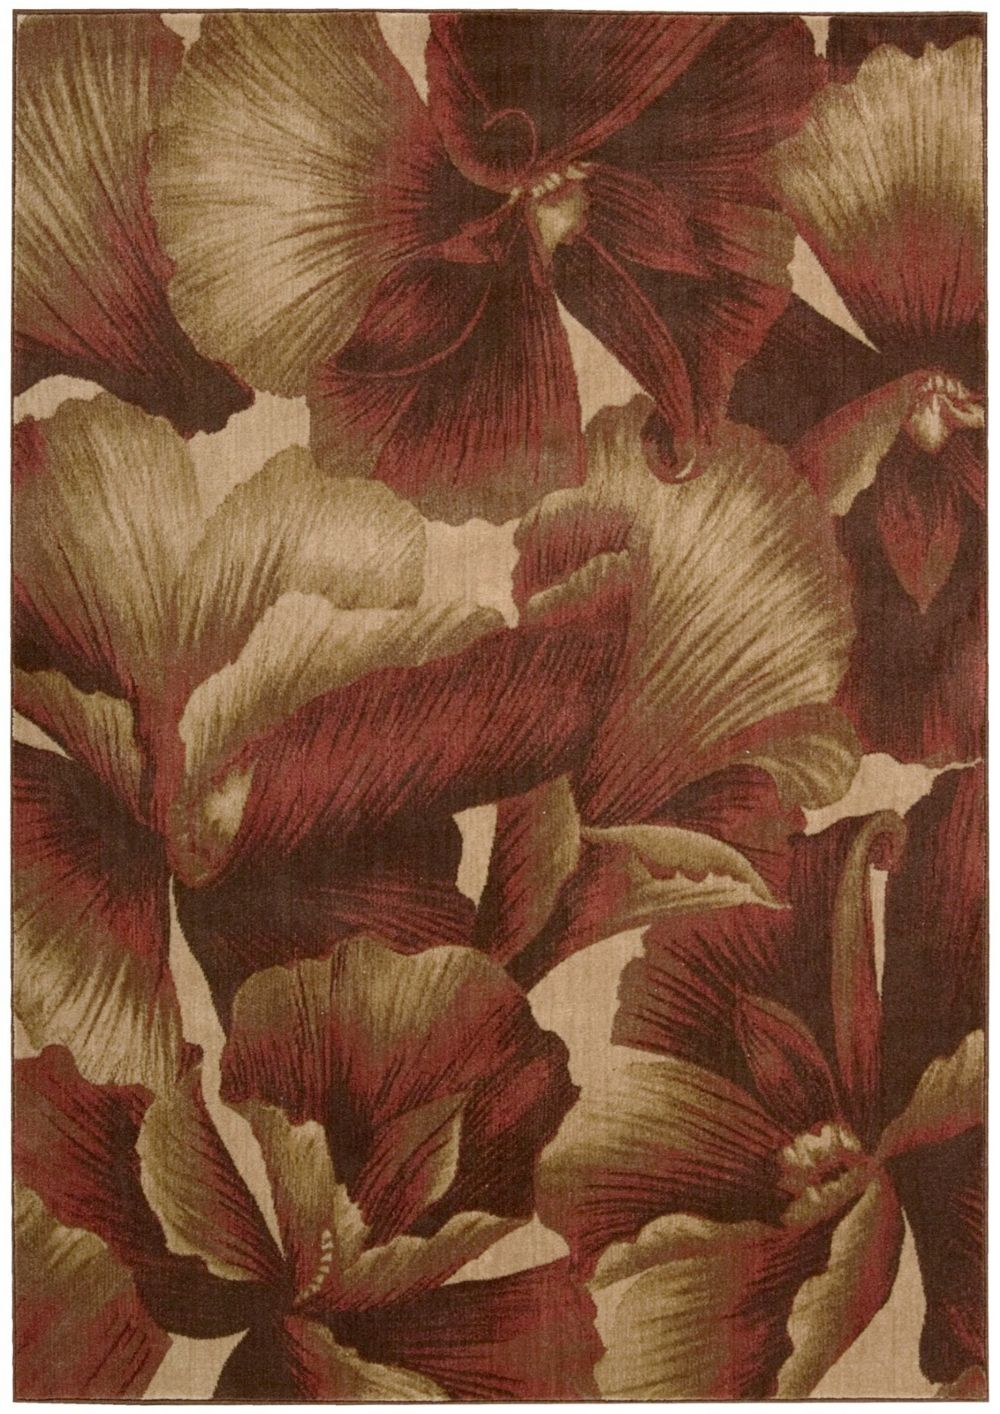 nourison somerset country & floral area rug collection